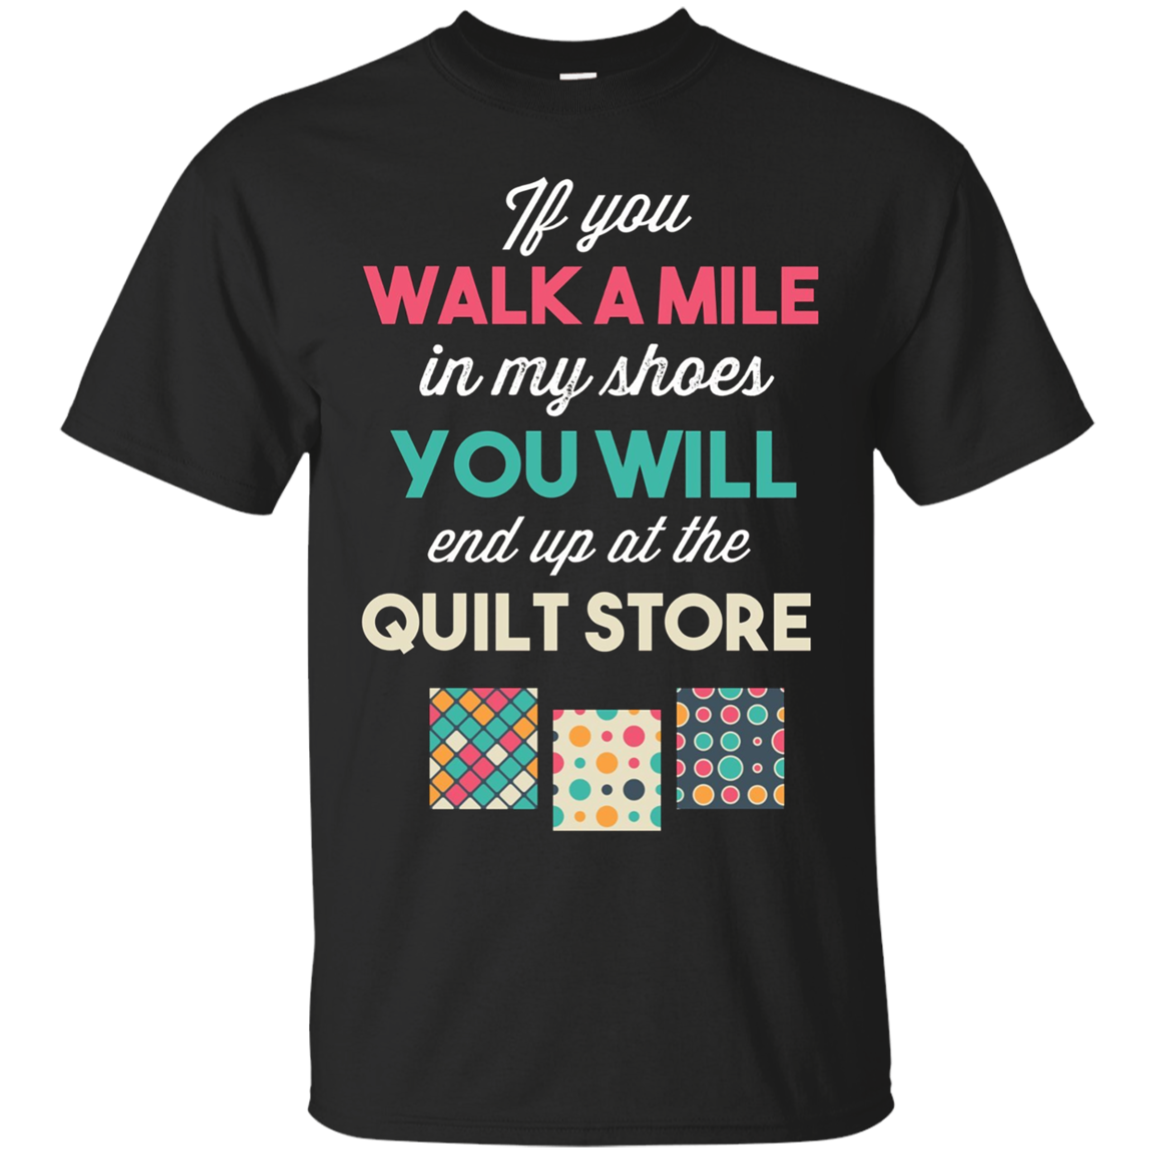 Walk Mile End Up At Quilt Store Funny Quilter GIfts Apparel